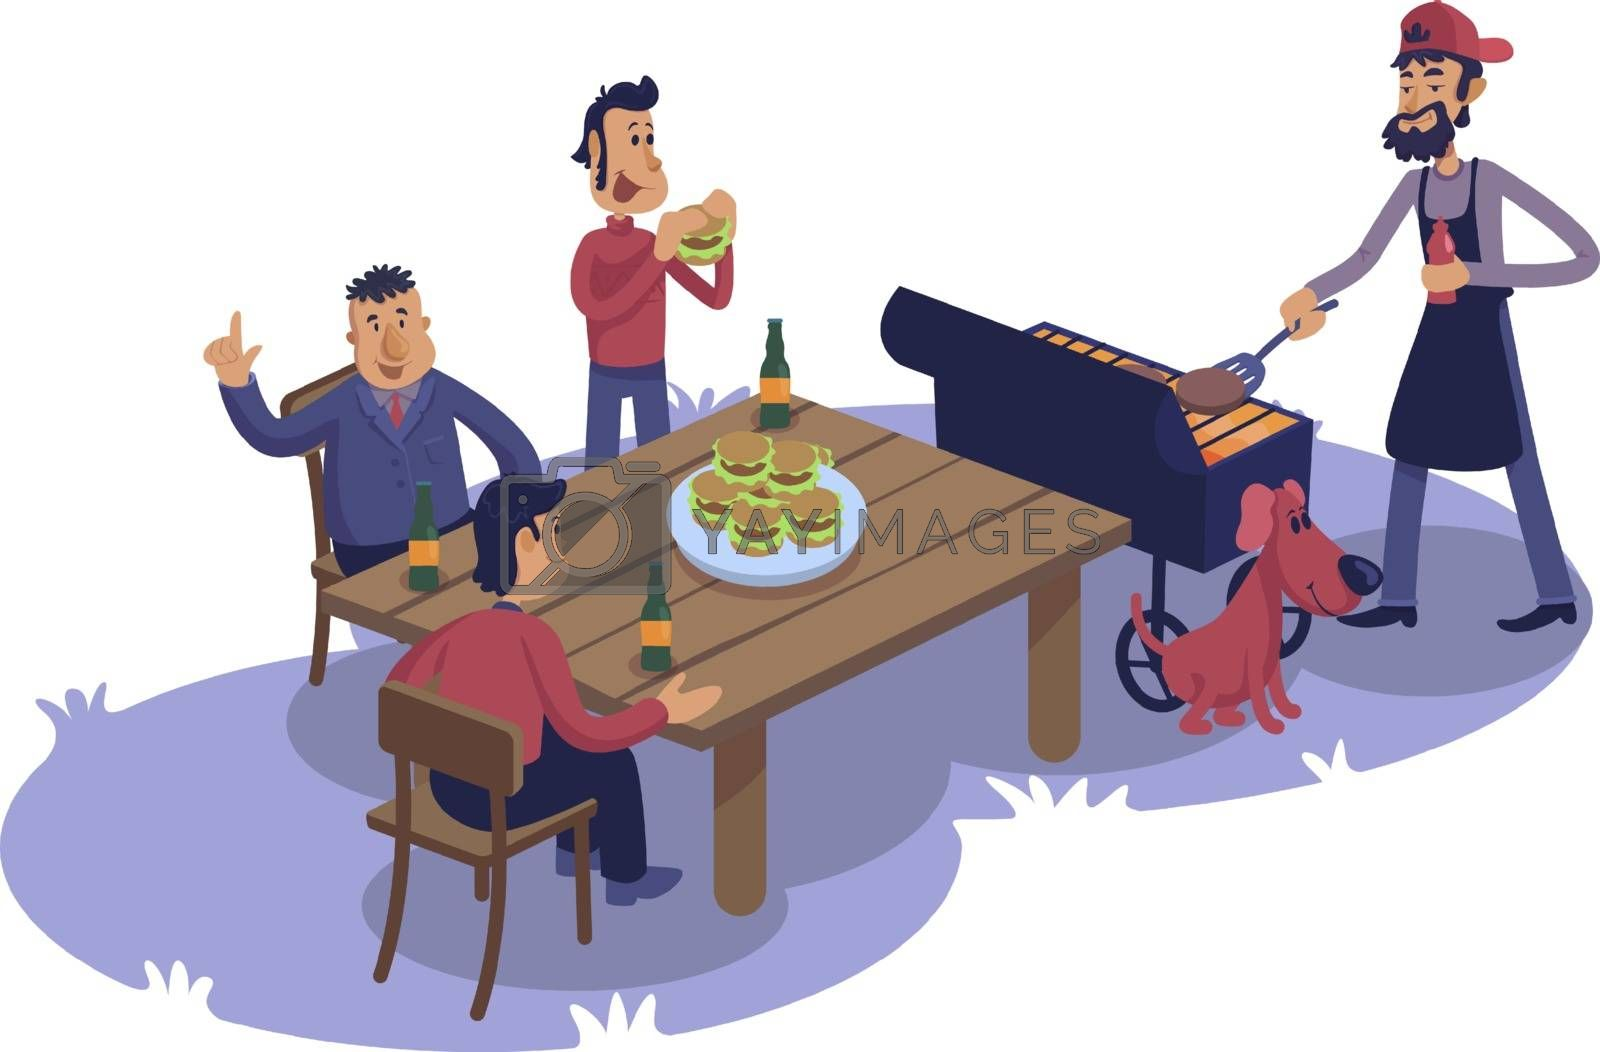 Male friends at barbecue flat cartoon vector illustration. Men cooking and eating burgers outdoor. Ready to use 2d character template for commercial, animation, printing design. Isolated comic hero. ZIP file contains: EPS, JPG. If you are interested in custom design or want to make some adjustments to purchase the product, don't hesitate to contact us! bsd@bsdartfactory.com